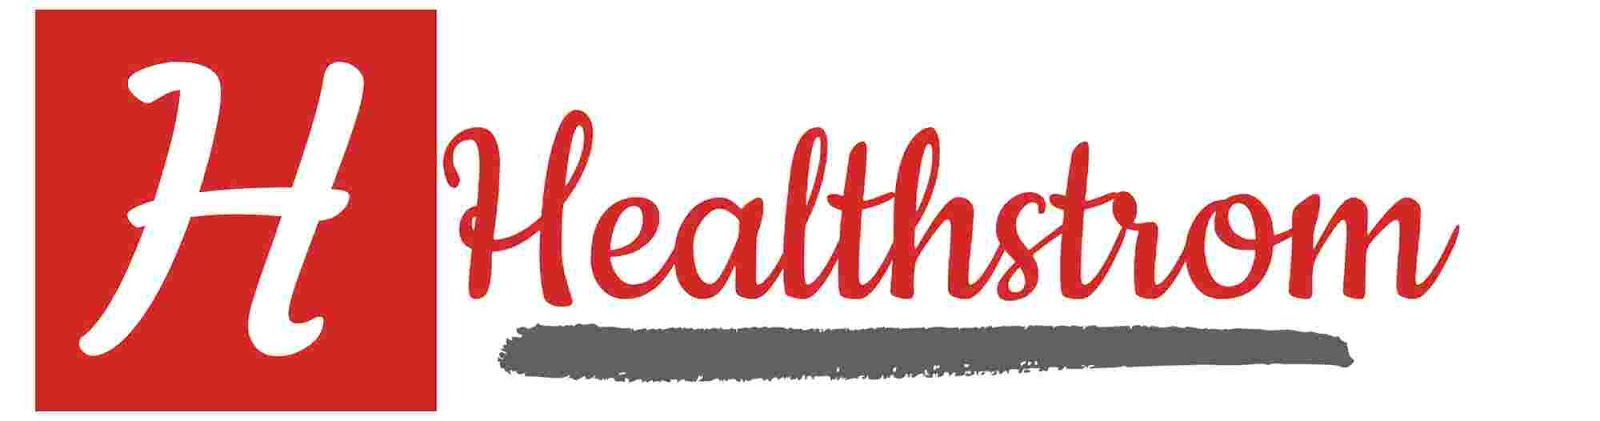 Healthstrom.com Health and fitness Information